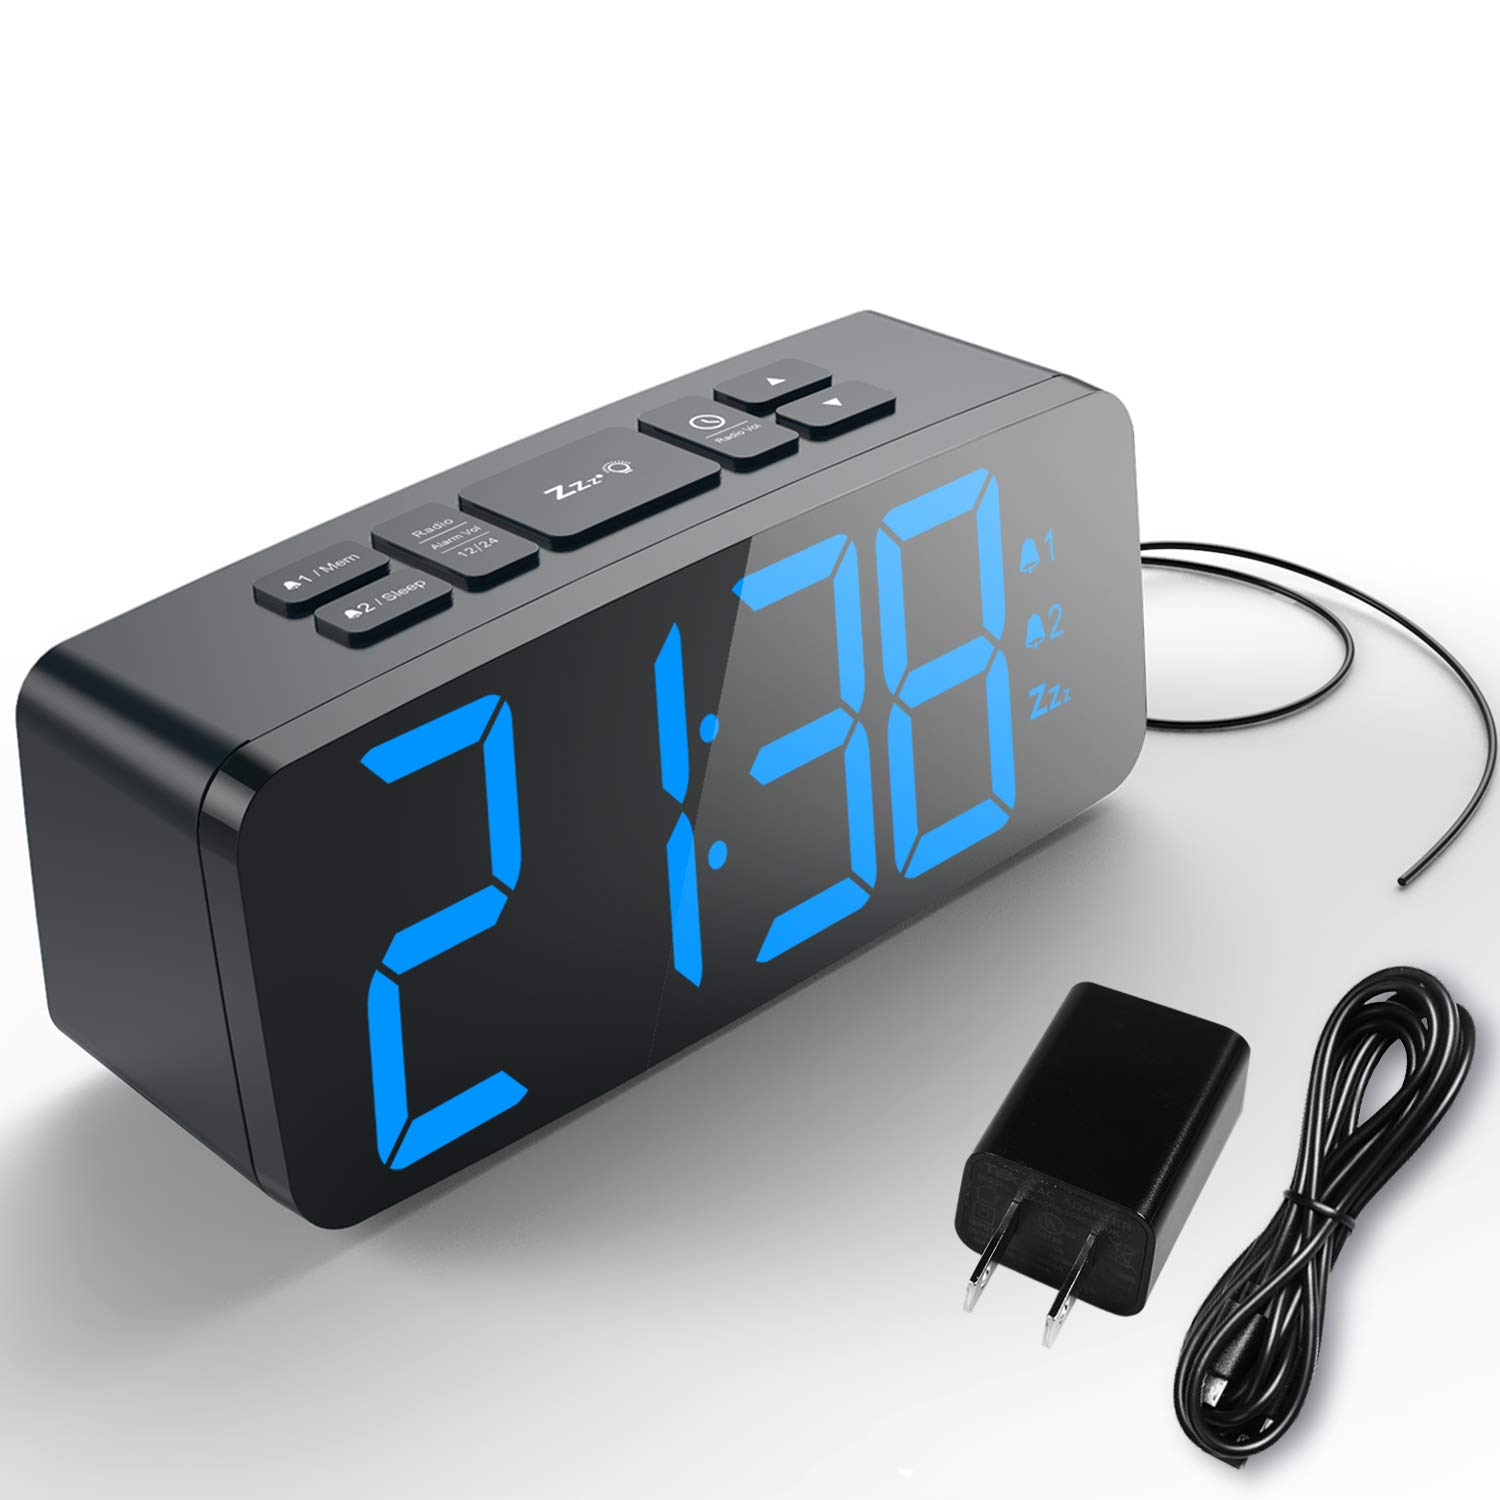 HAPTIME Digital Alarm Clock with FM Radio Dual-Alarm Snooze Large LED Display 12hr 24hr Format and Brightness Adjustable for Bedroom, Powered by USB Port and Backup Battery for Clock-Setting by HAPTIME